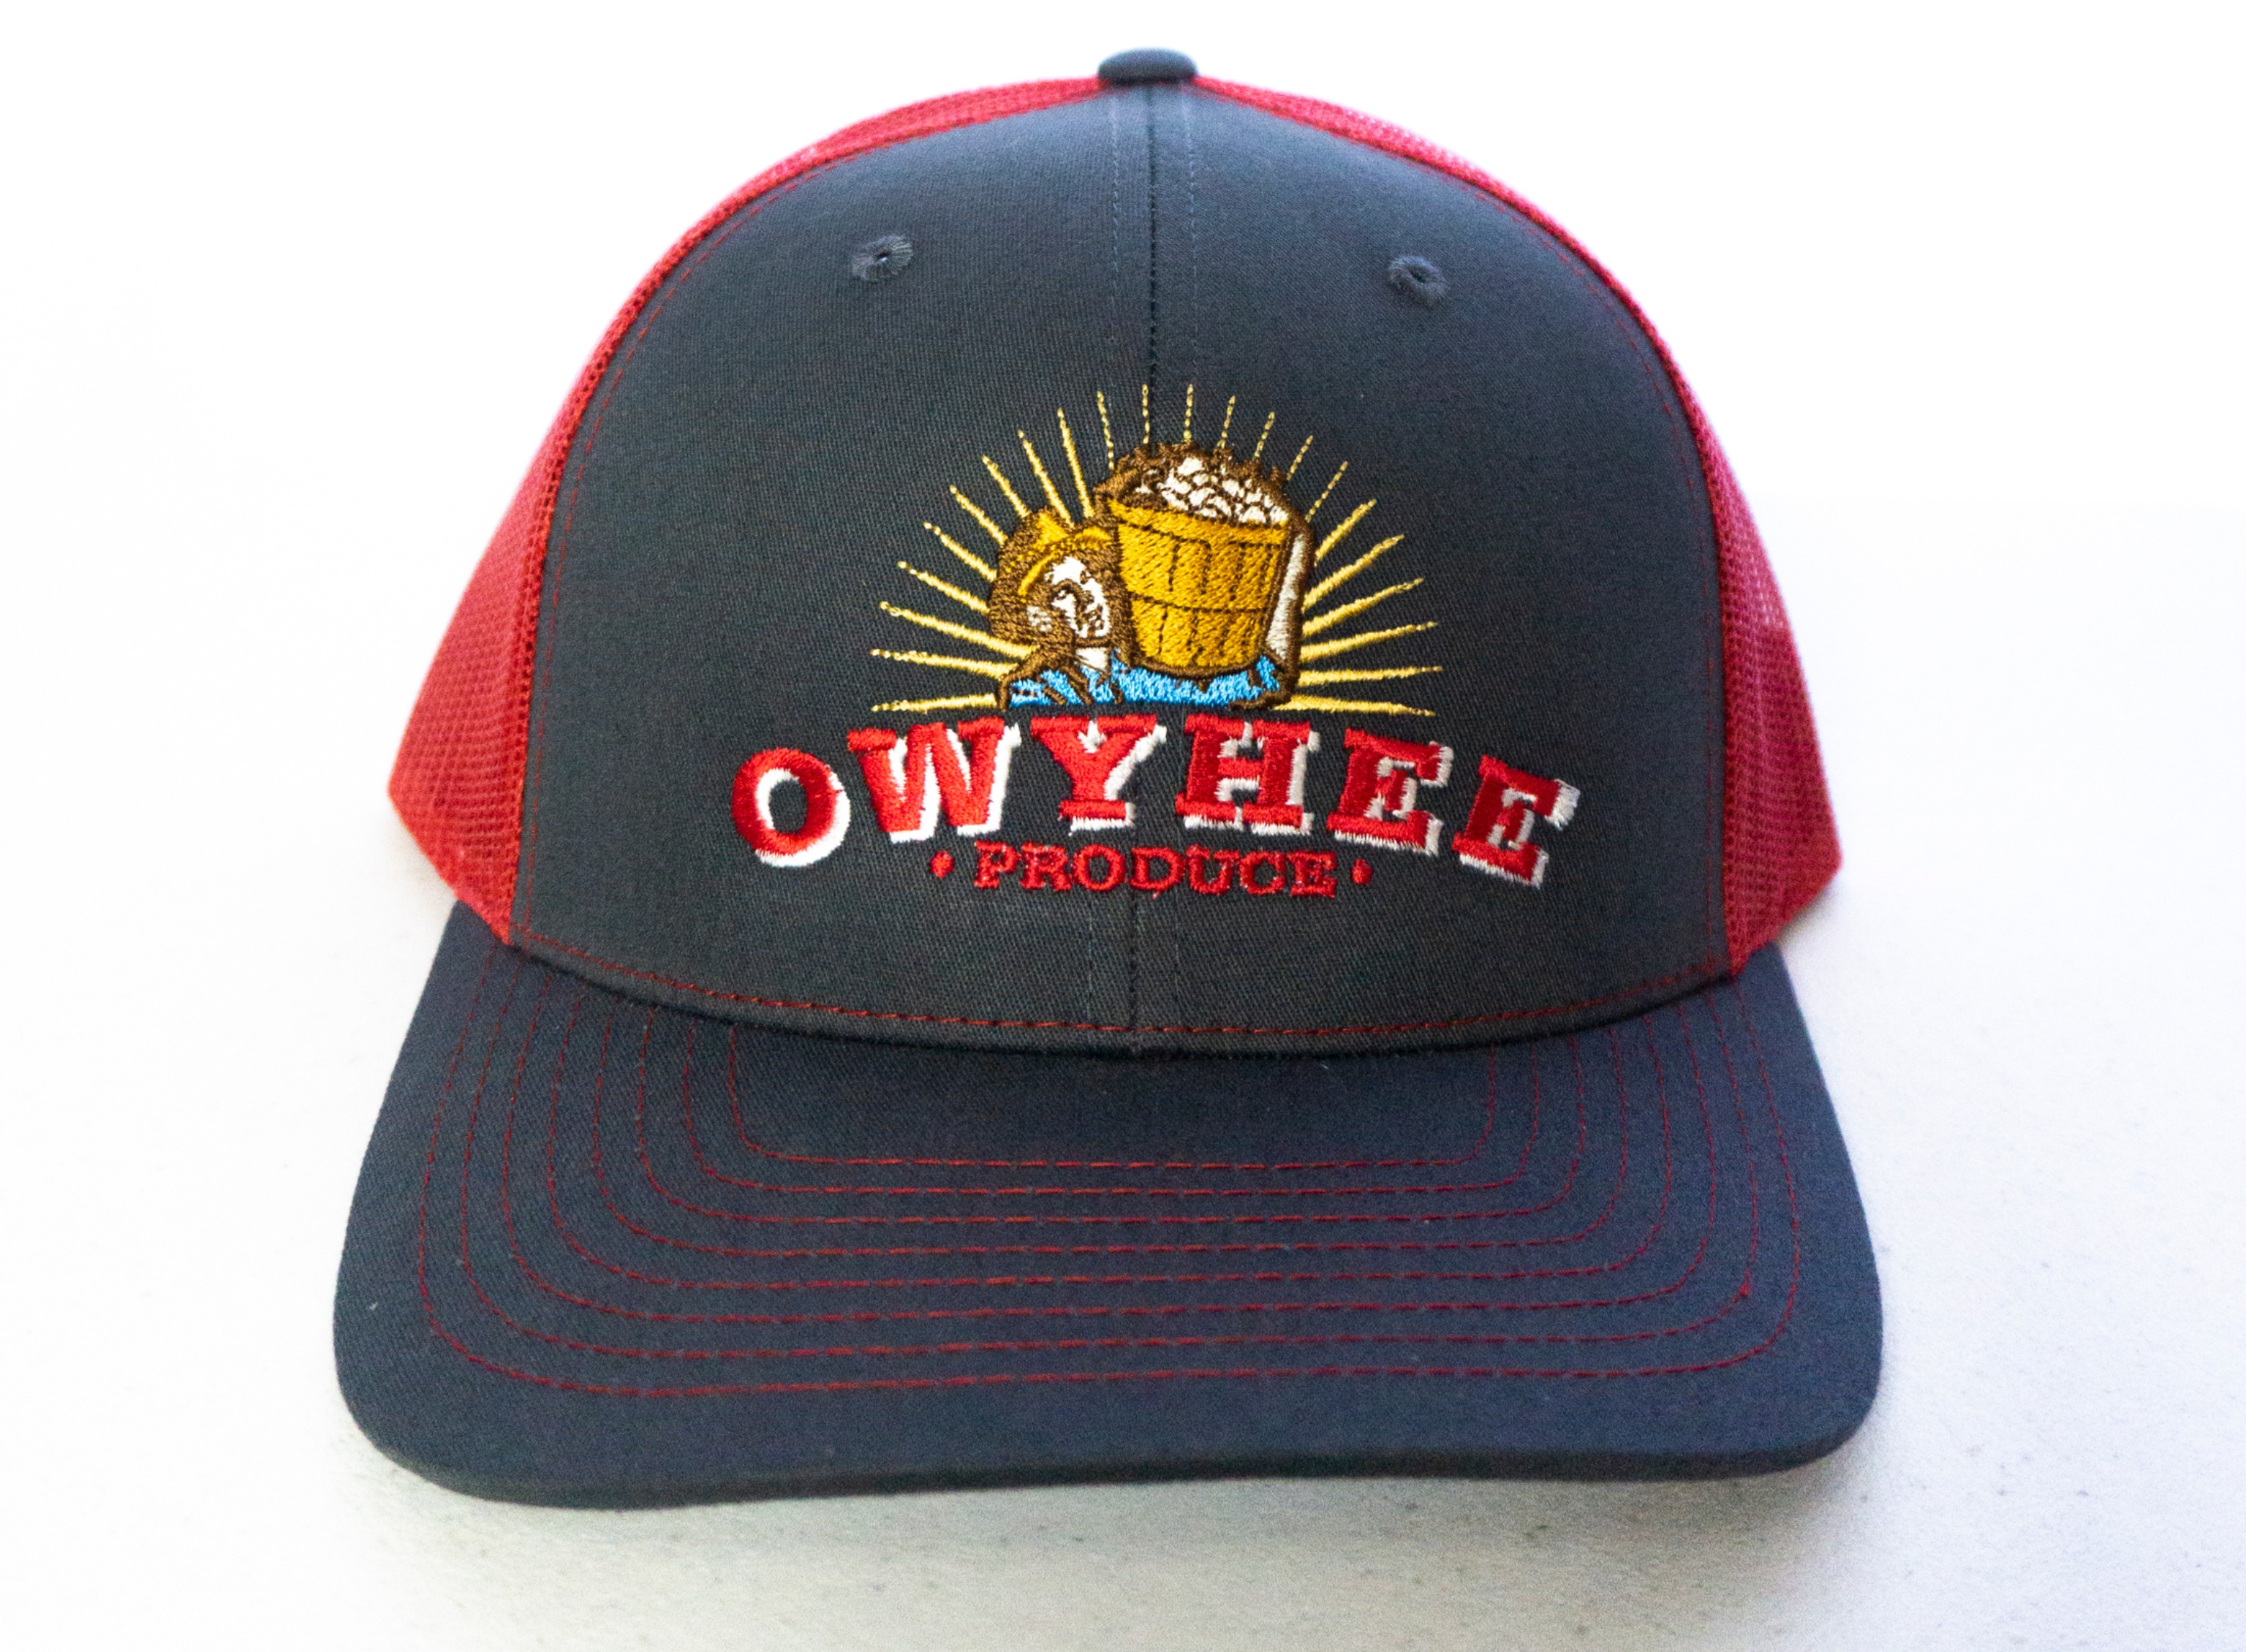 112 Richardson Trucker Cap - Split Charcoal/Red.